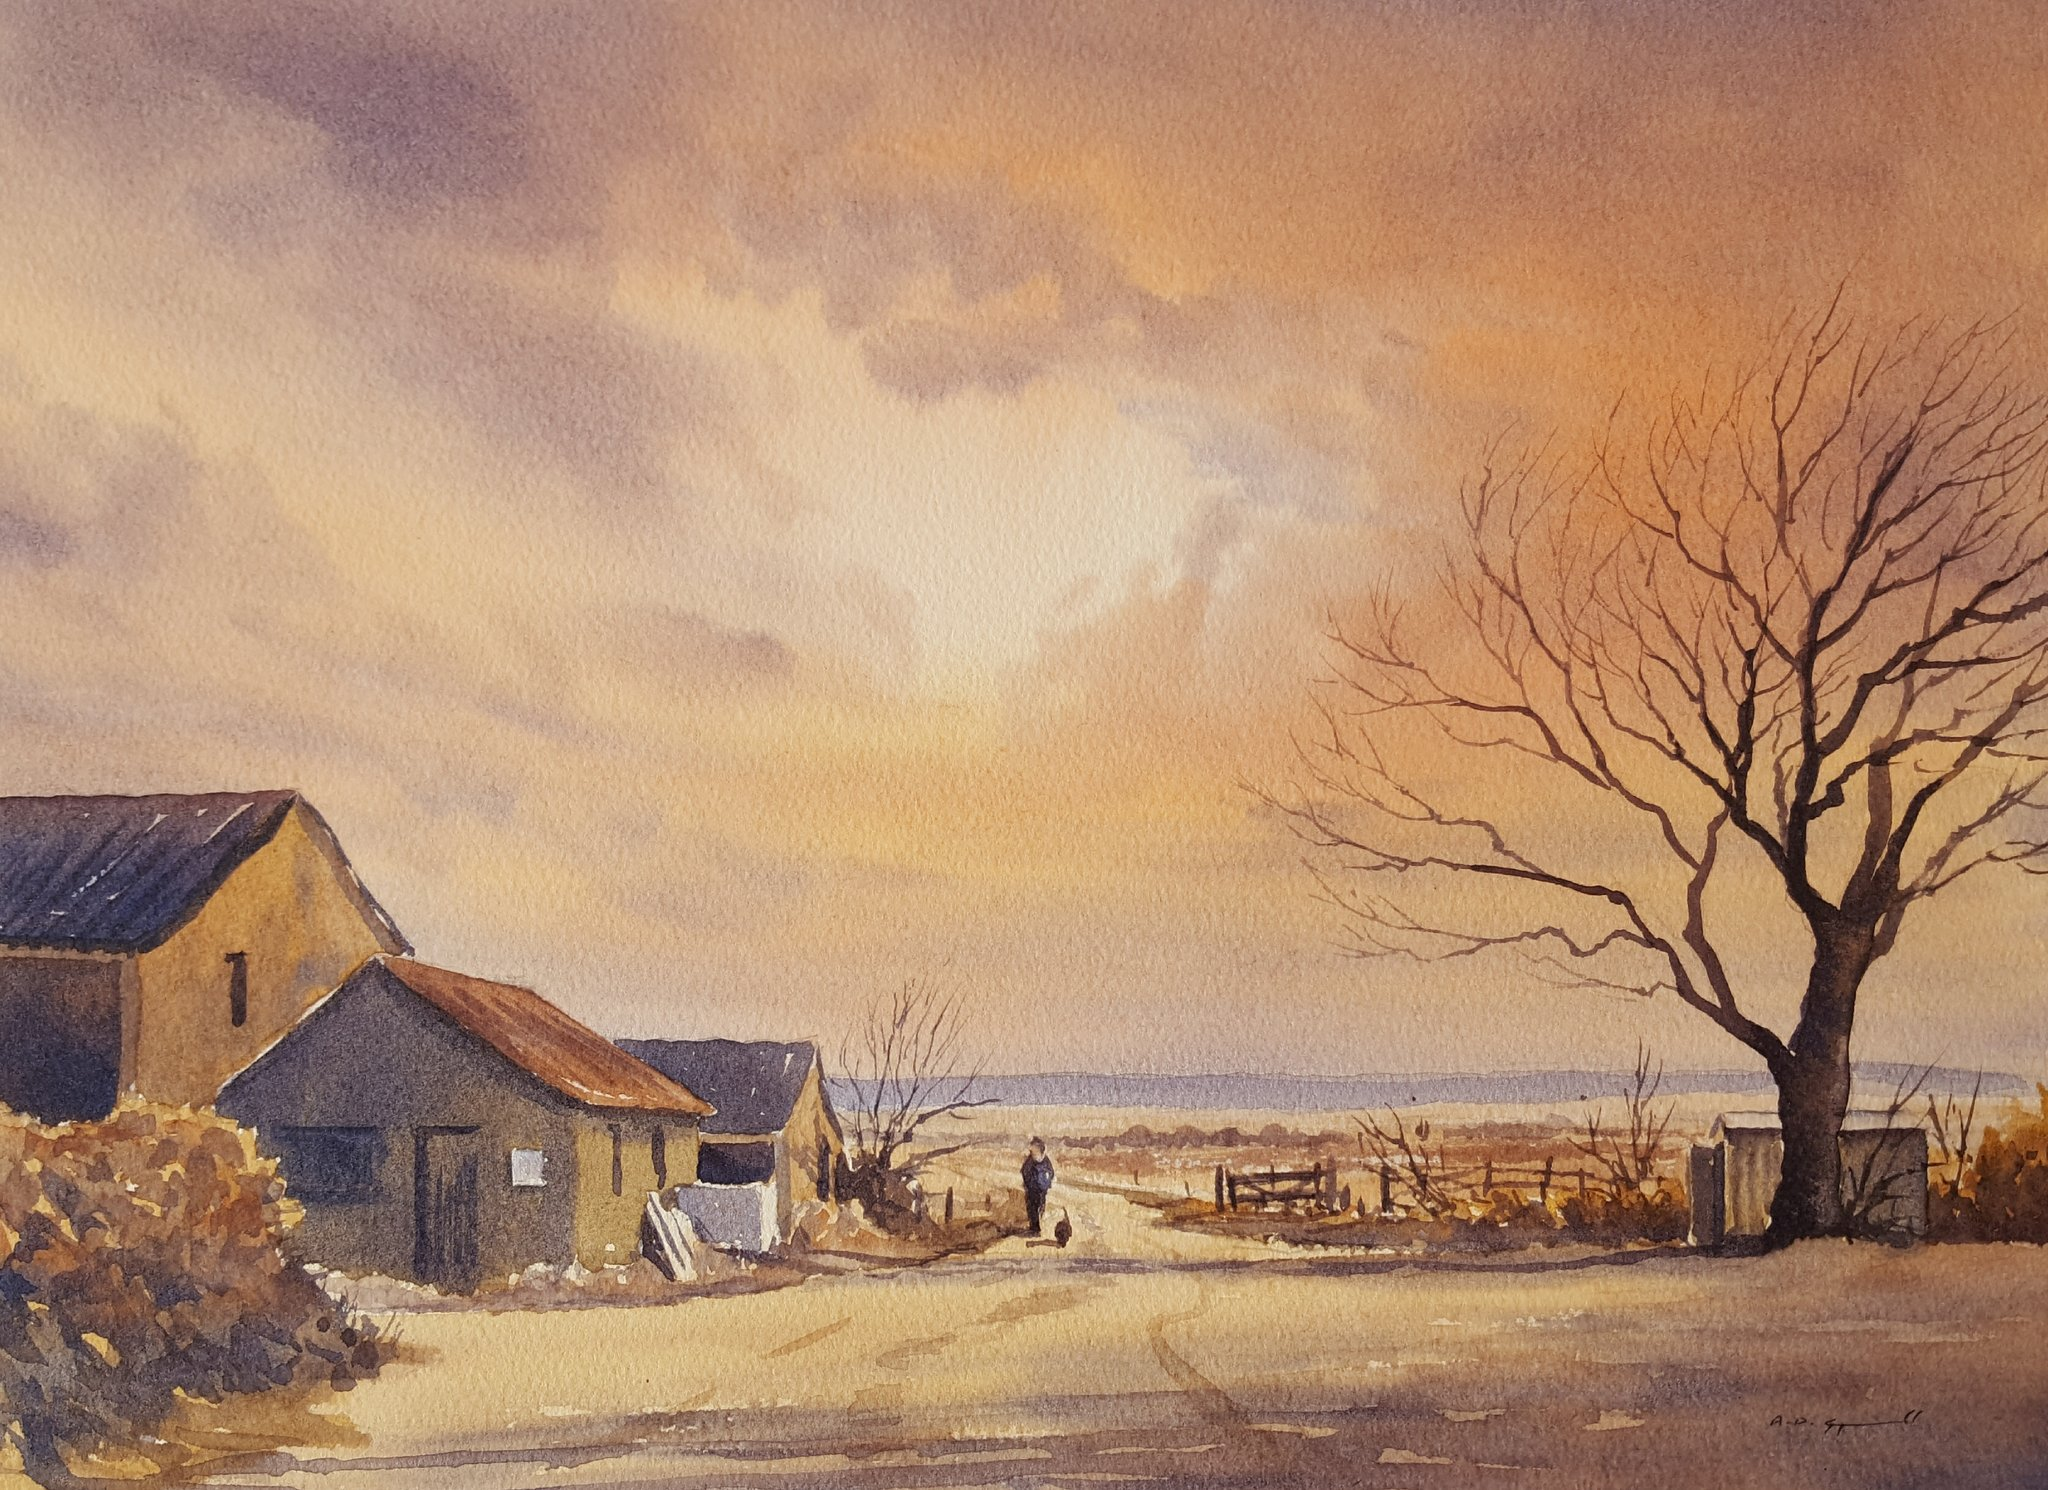 #Watercolour # sunset # farm #sheerness https://t.co/EJe0weraqG